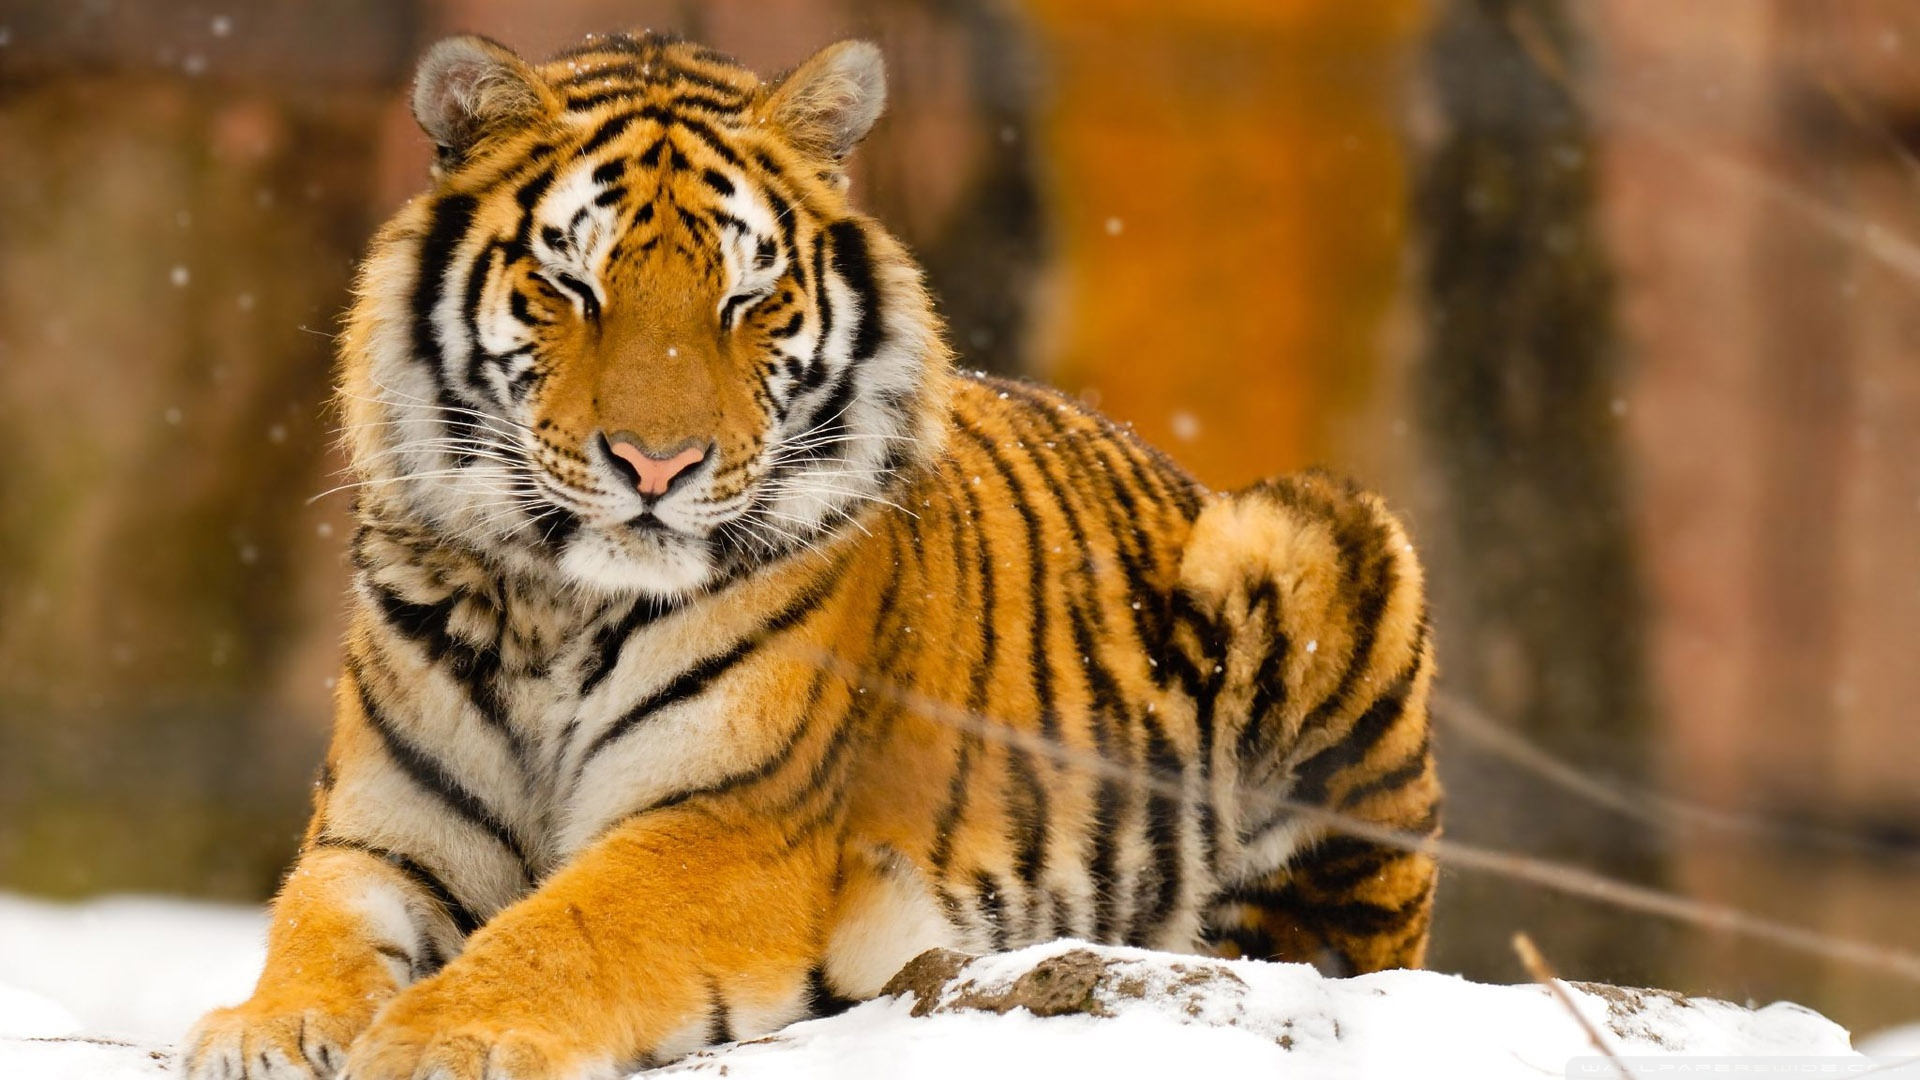 tiger full hd wallpaper and background image | 1920x1080 | id:540994